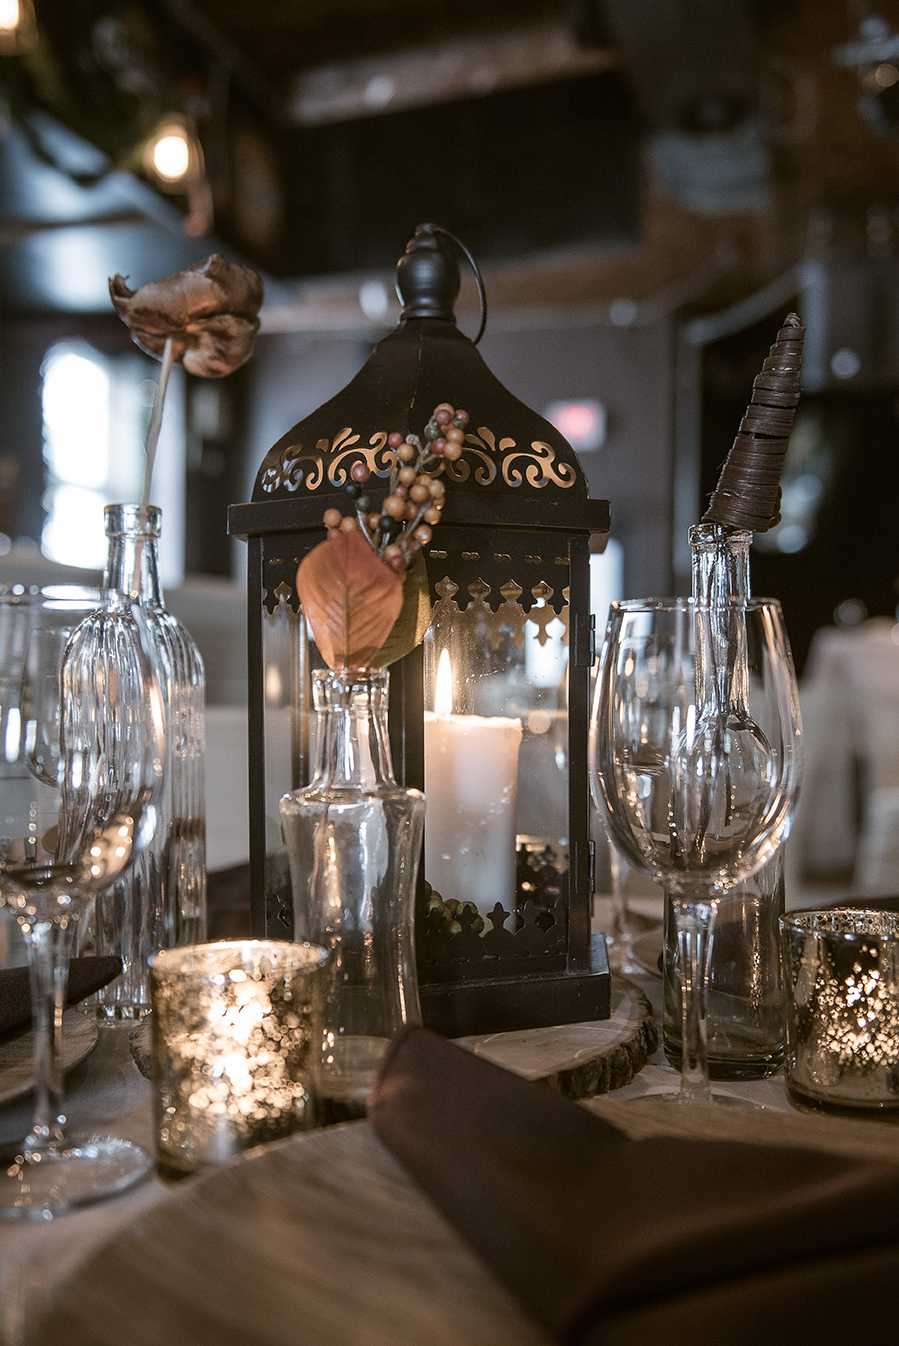 Close-Up-Wedding-Decor-1.jpg